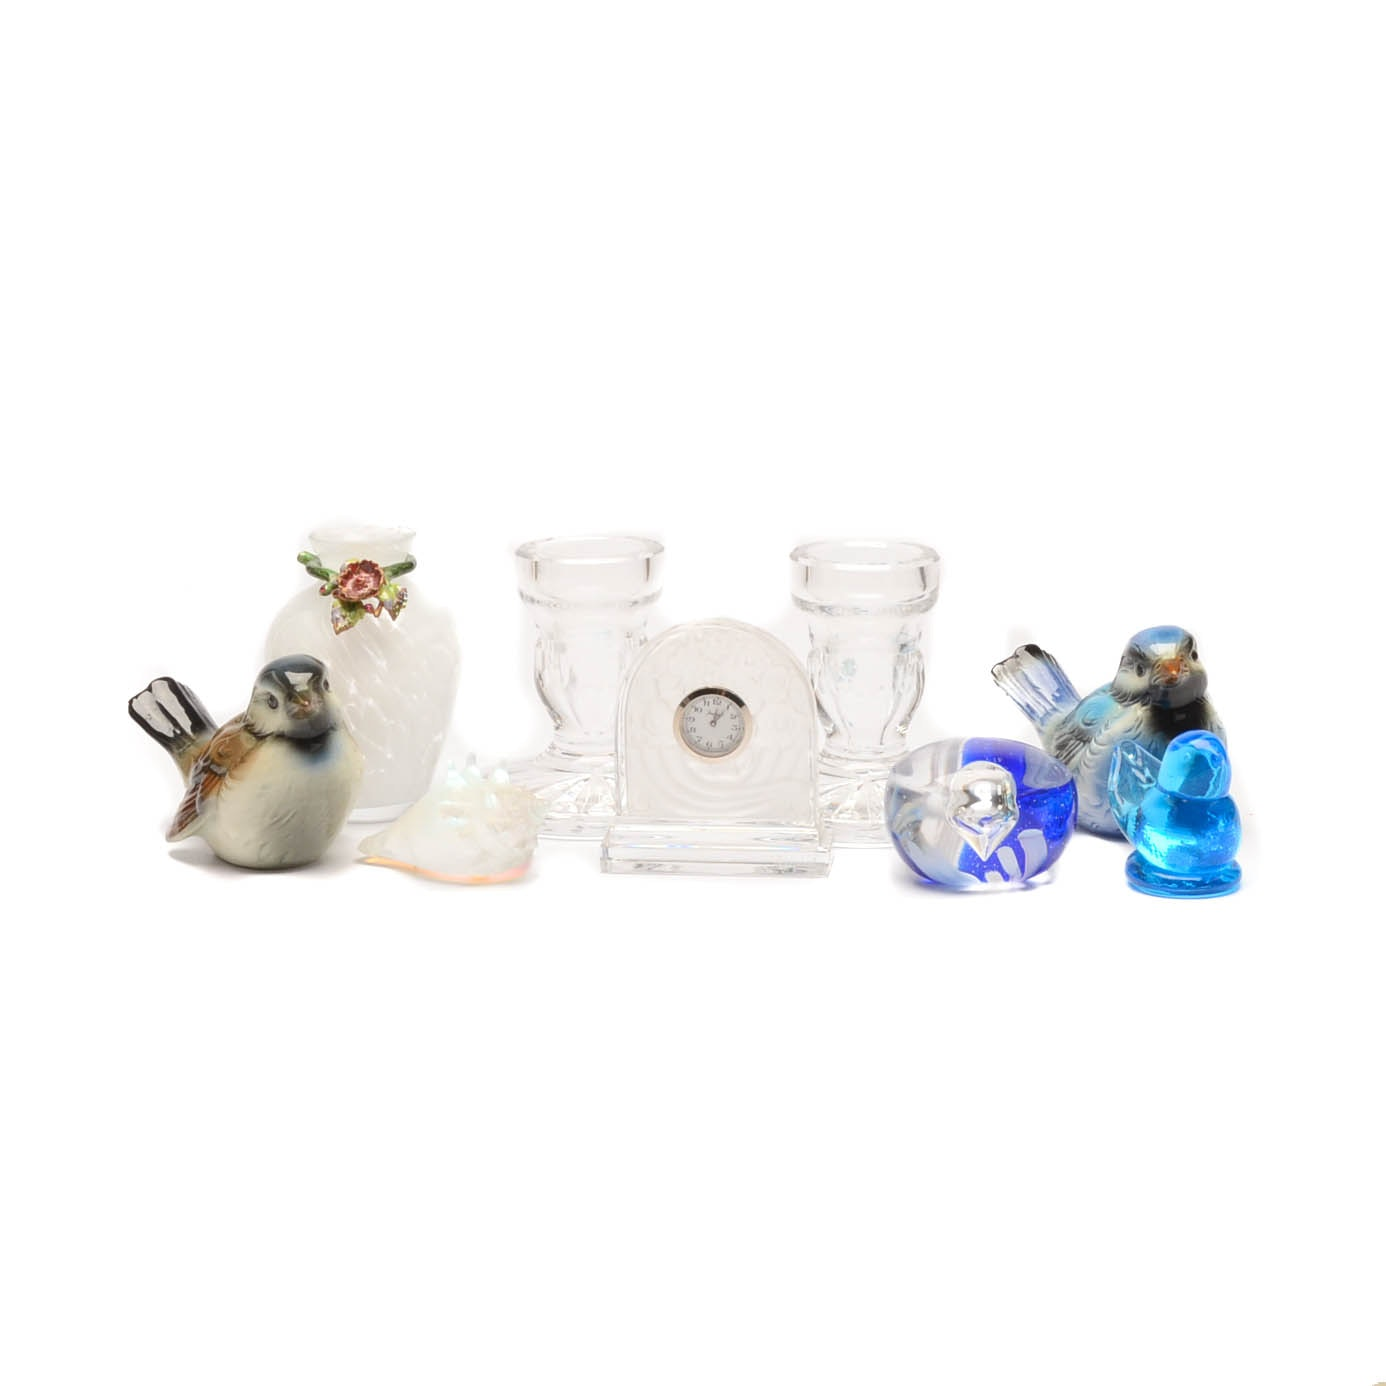 Assorted Mid-Century Crystal Glass, Art Glass, and Figurines